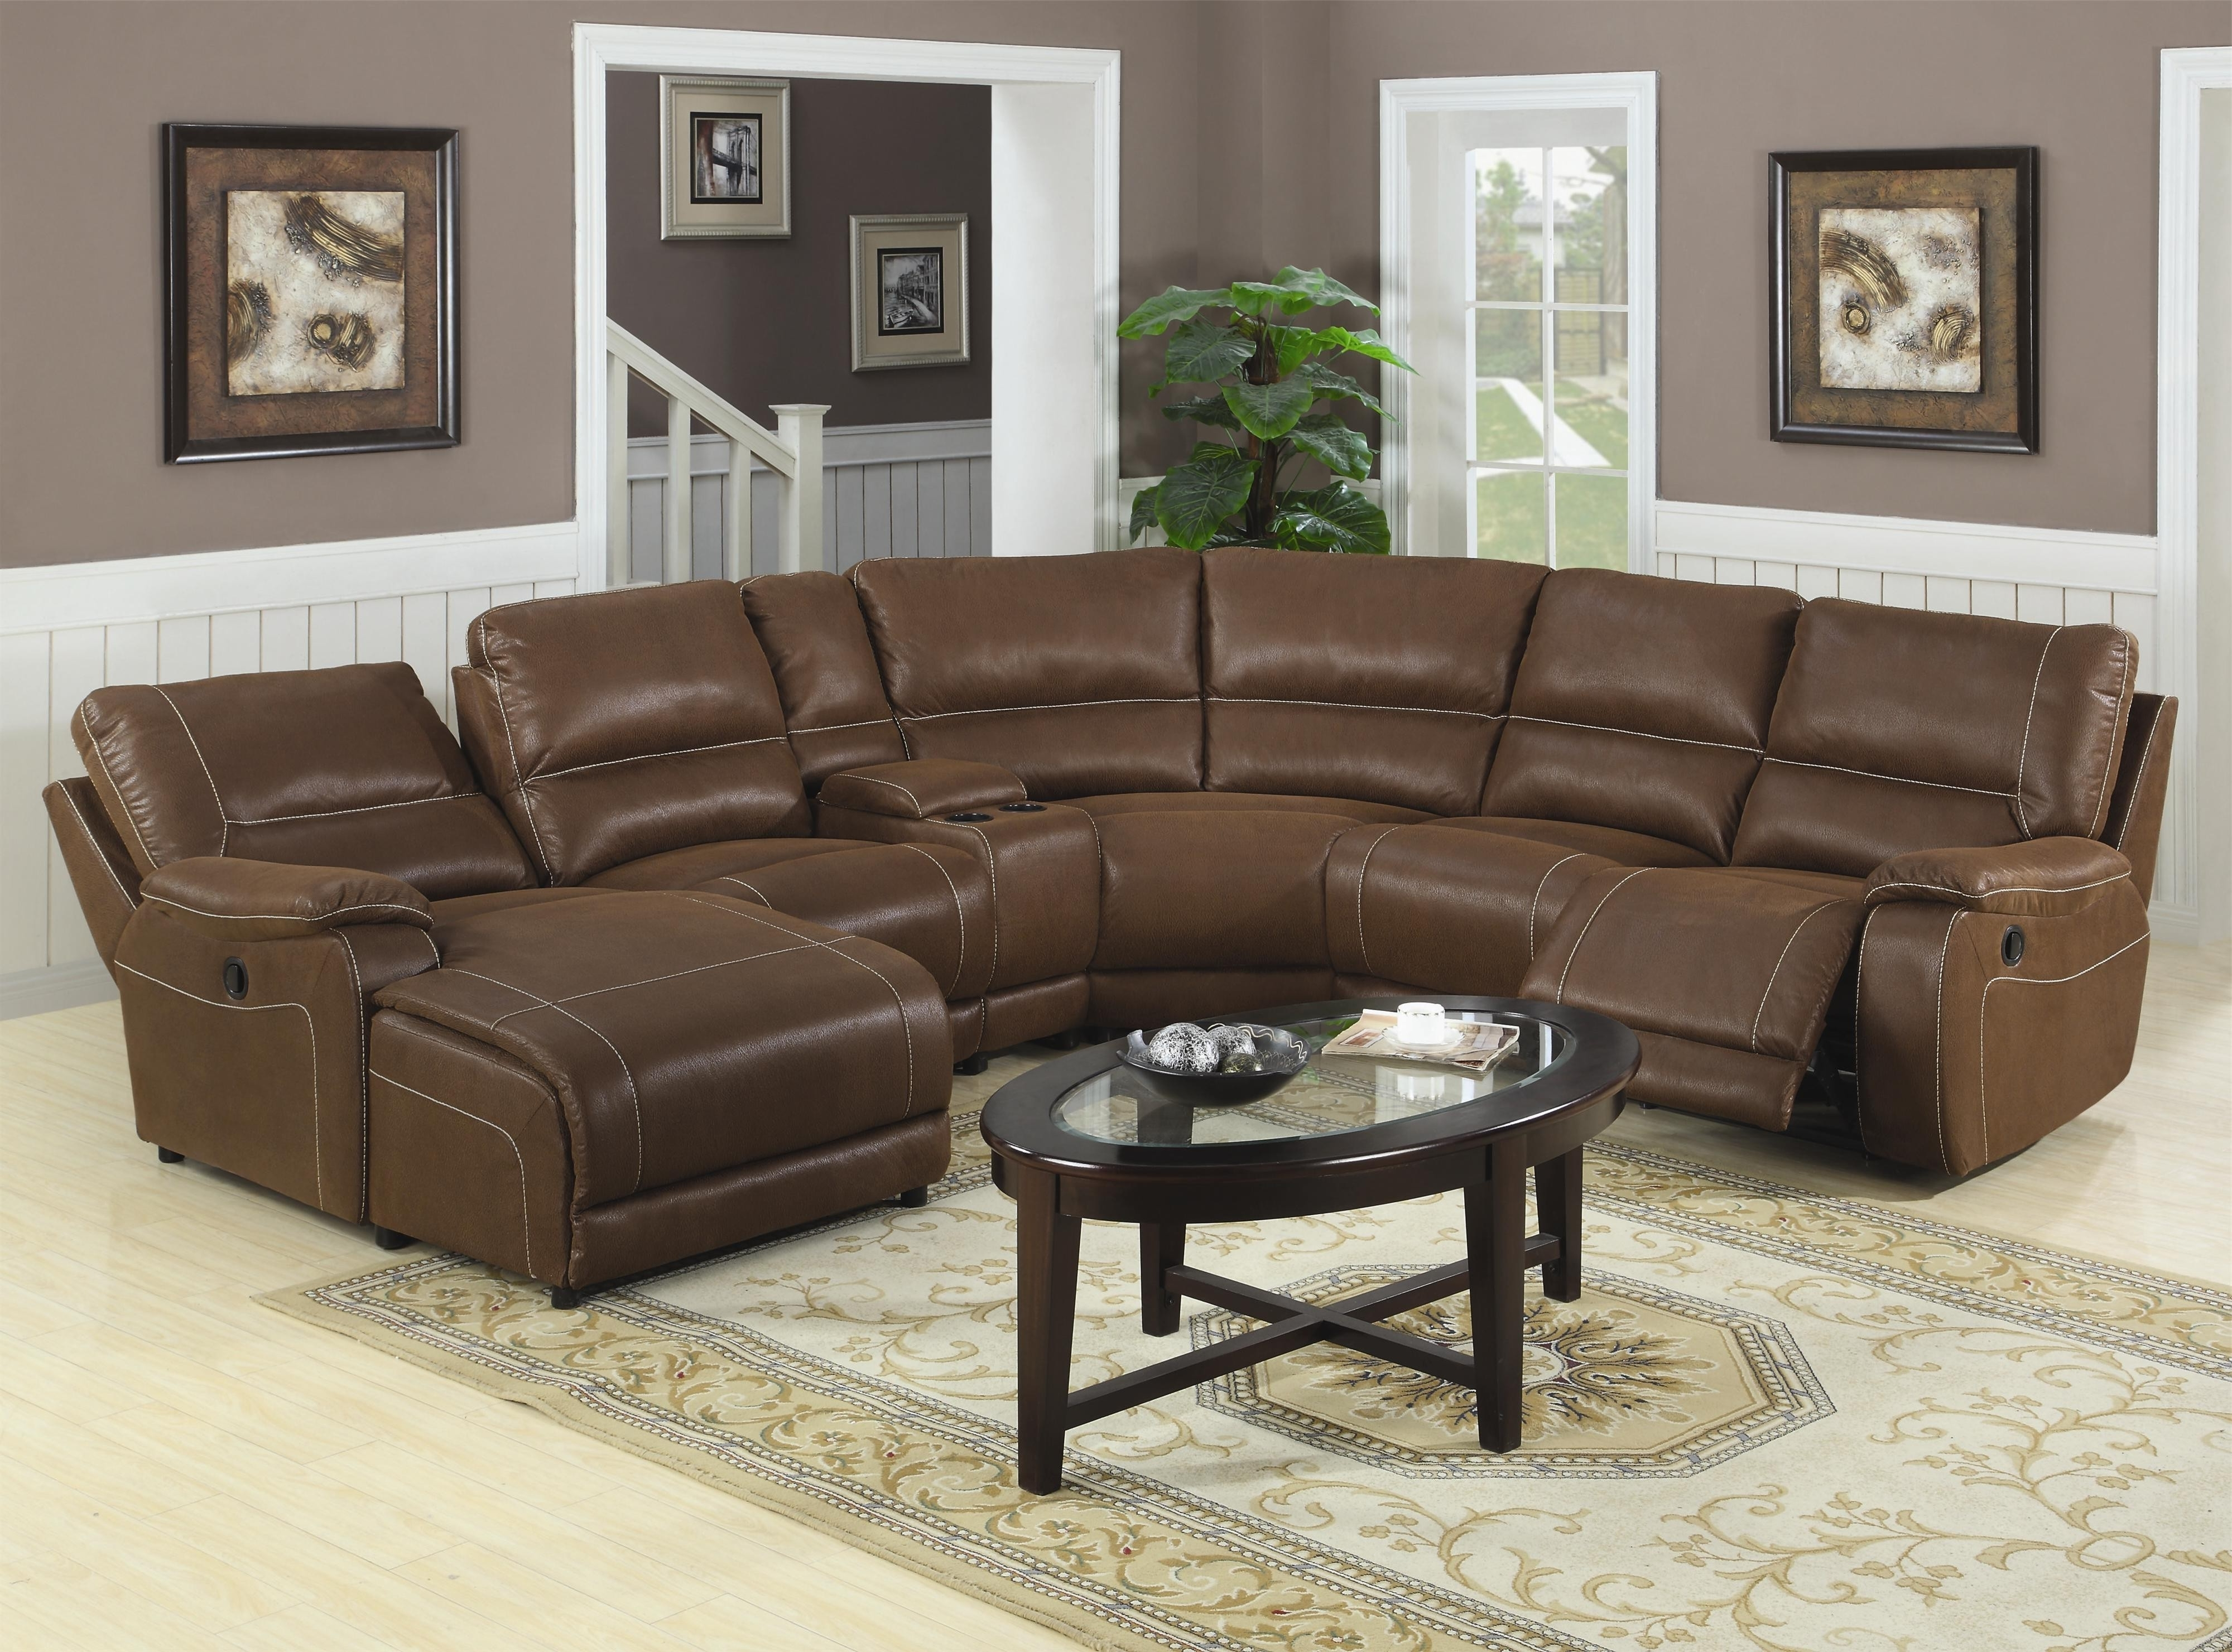 Fashionable Brown Leather Recliner Sectional Sofa With Oval Black Teak Wood In Leather Recliner Sectional Sofas (Gallery 19 of 20)